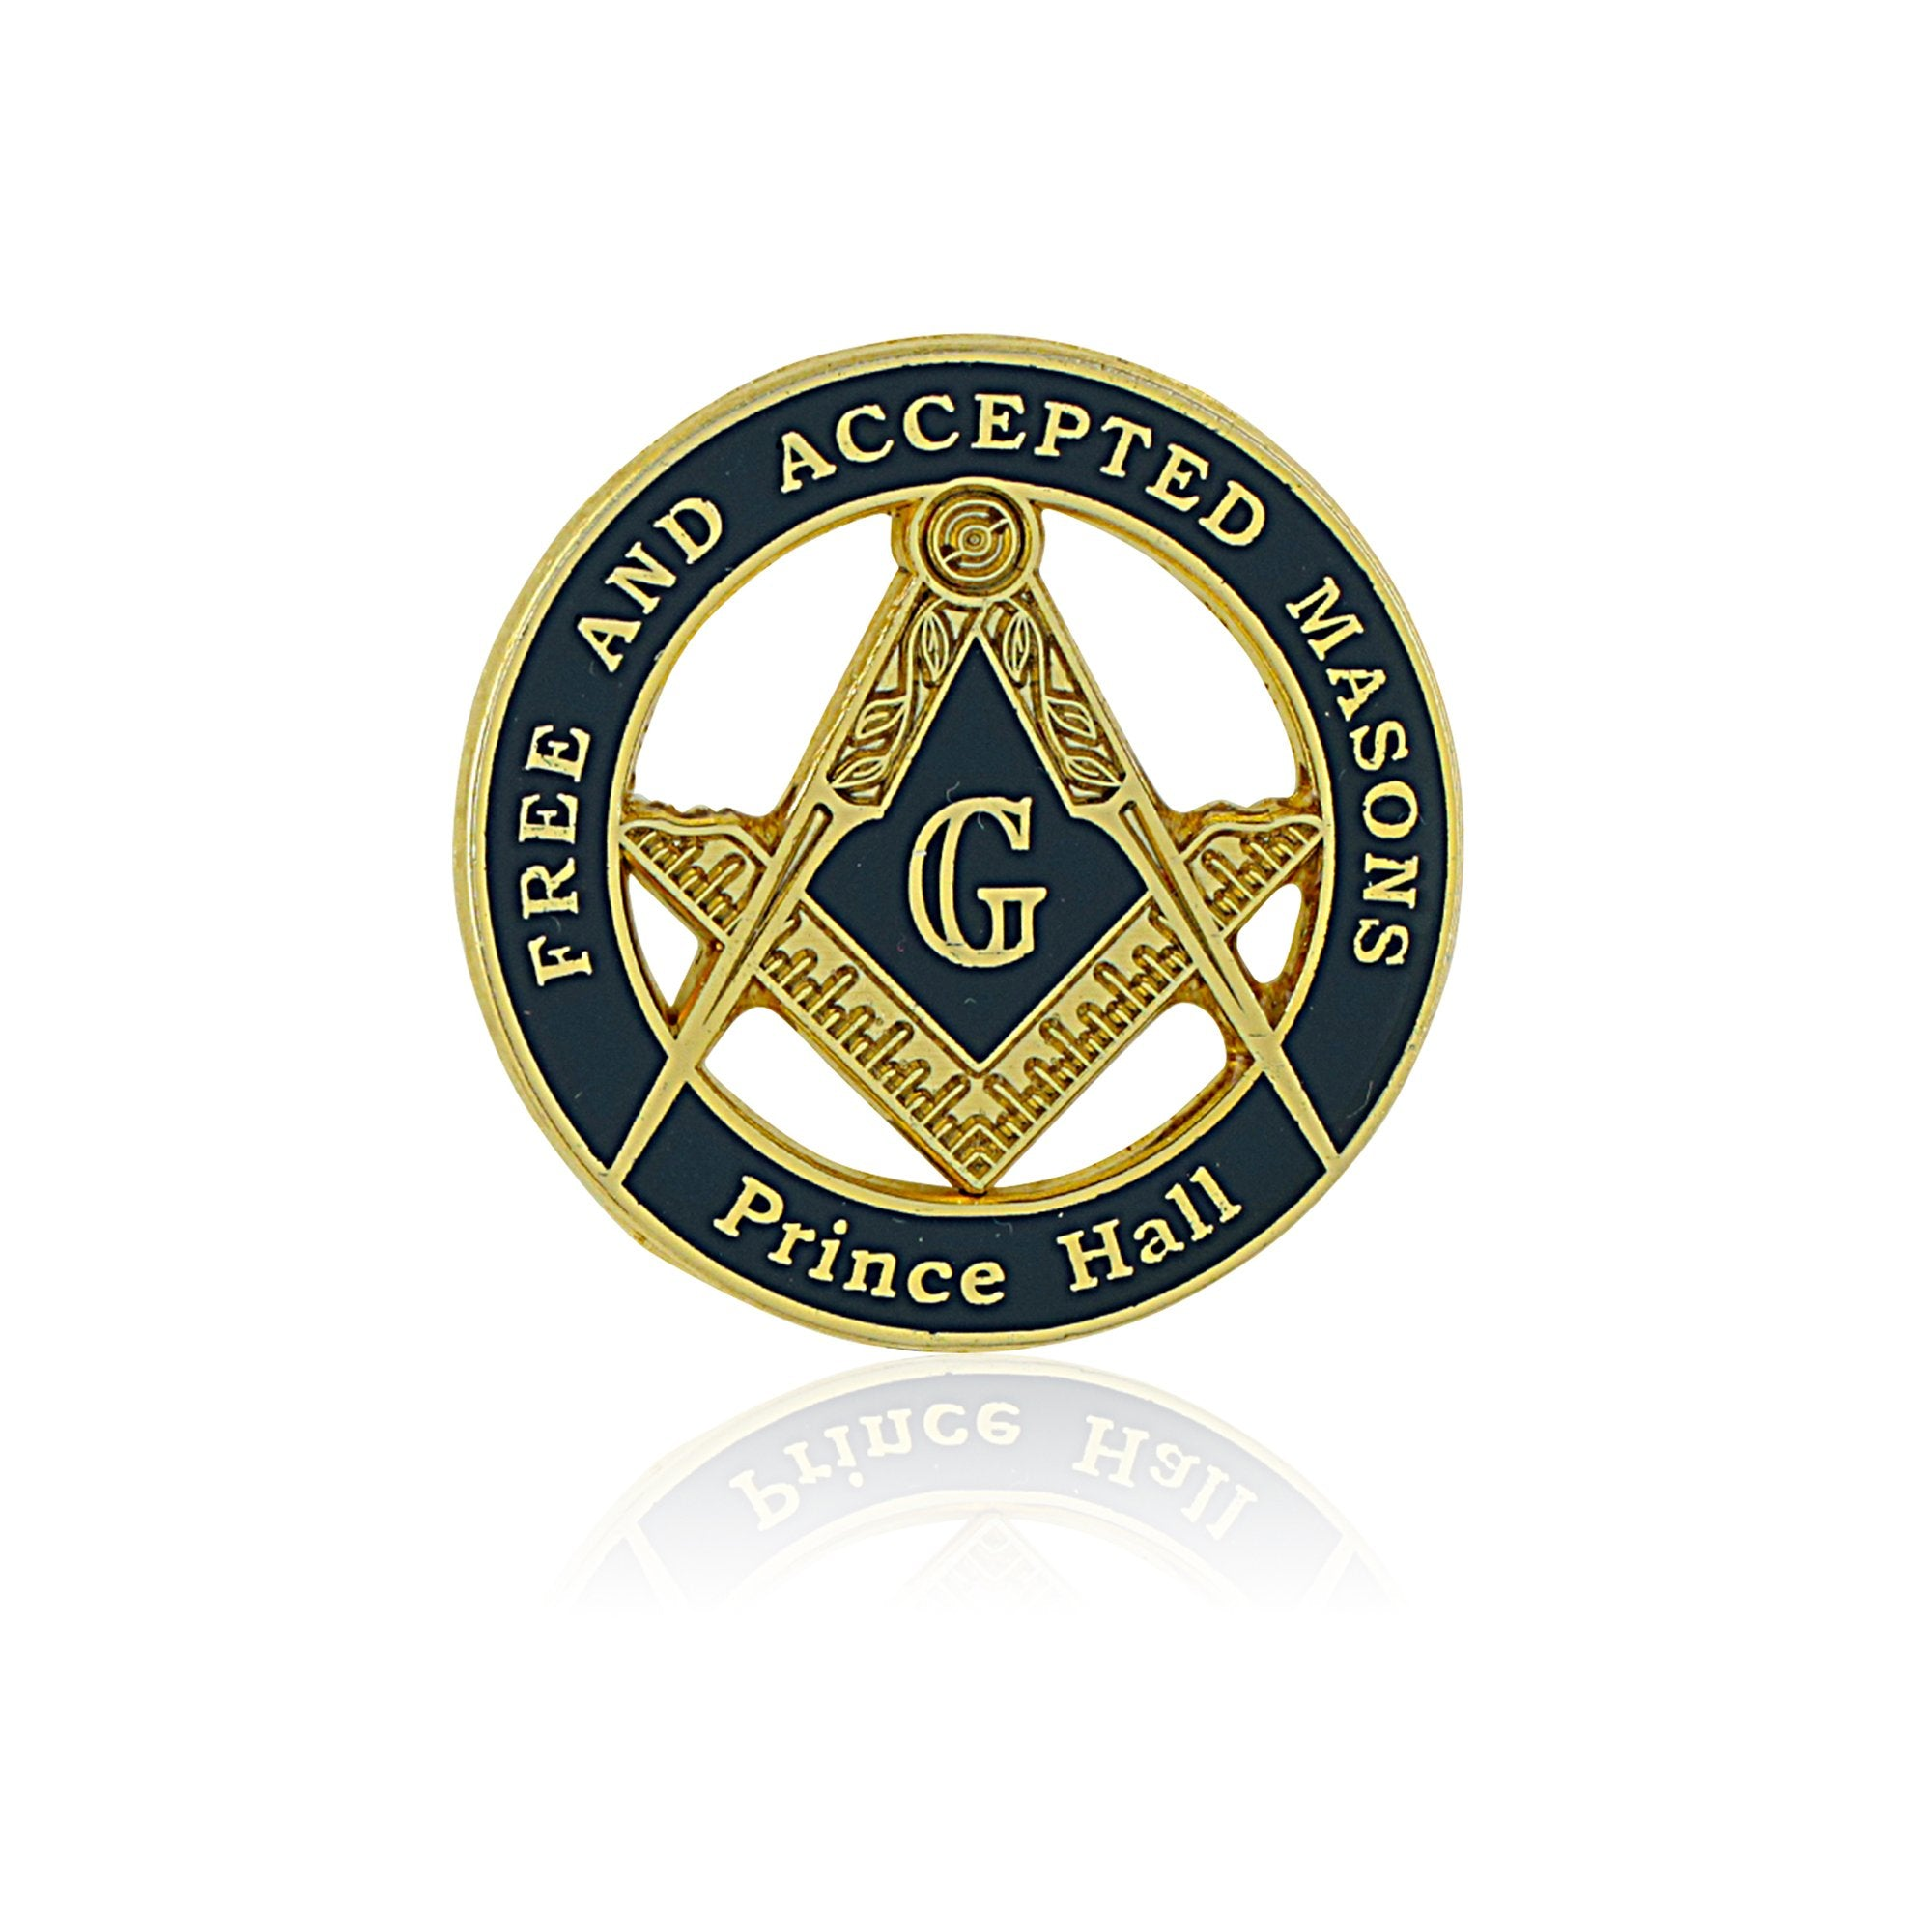 Prince Hall Free and Acceptd Mason Lapel Pin by The Masonic Depot